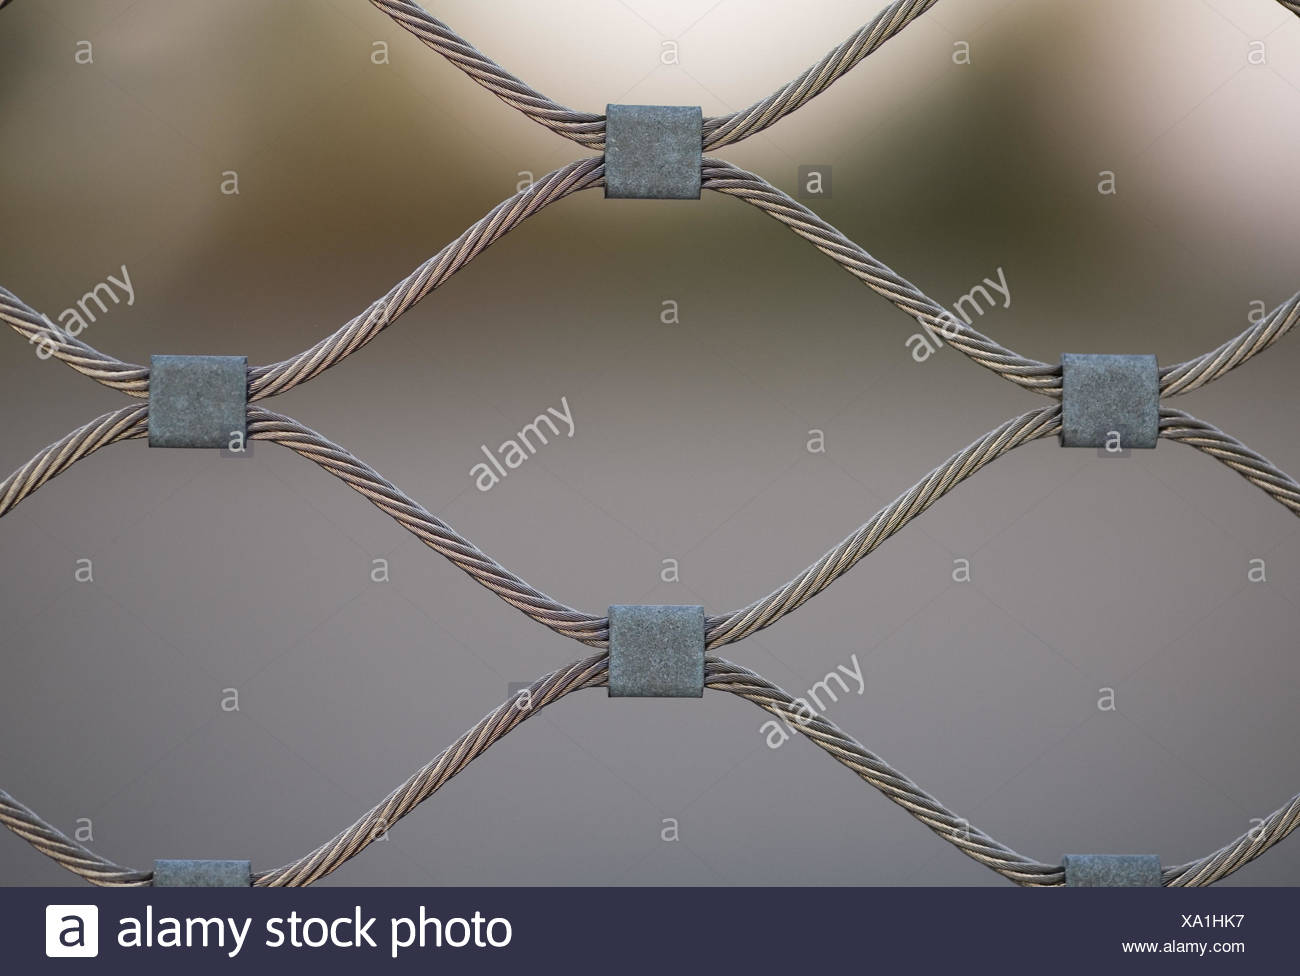 Wire Rope Connection Stockfotos & Wire Rope Connection Bilder - Alamy